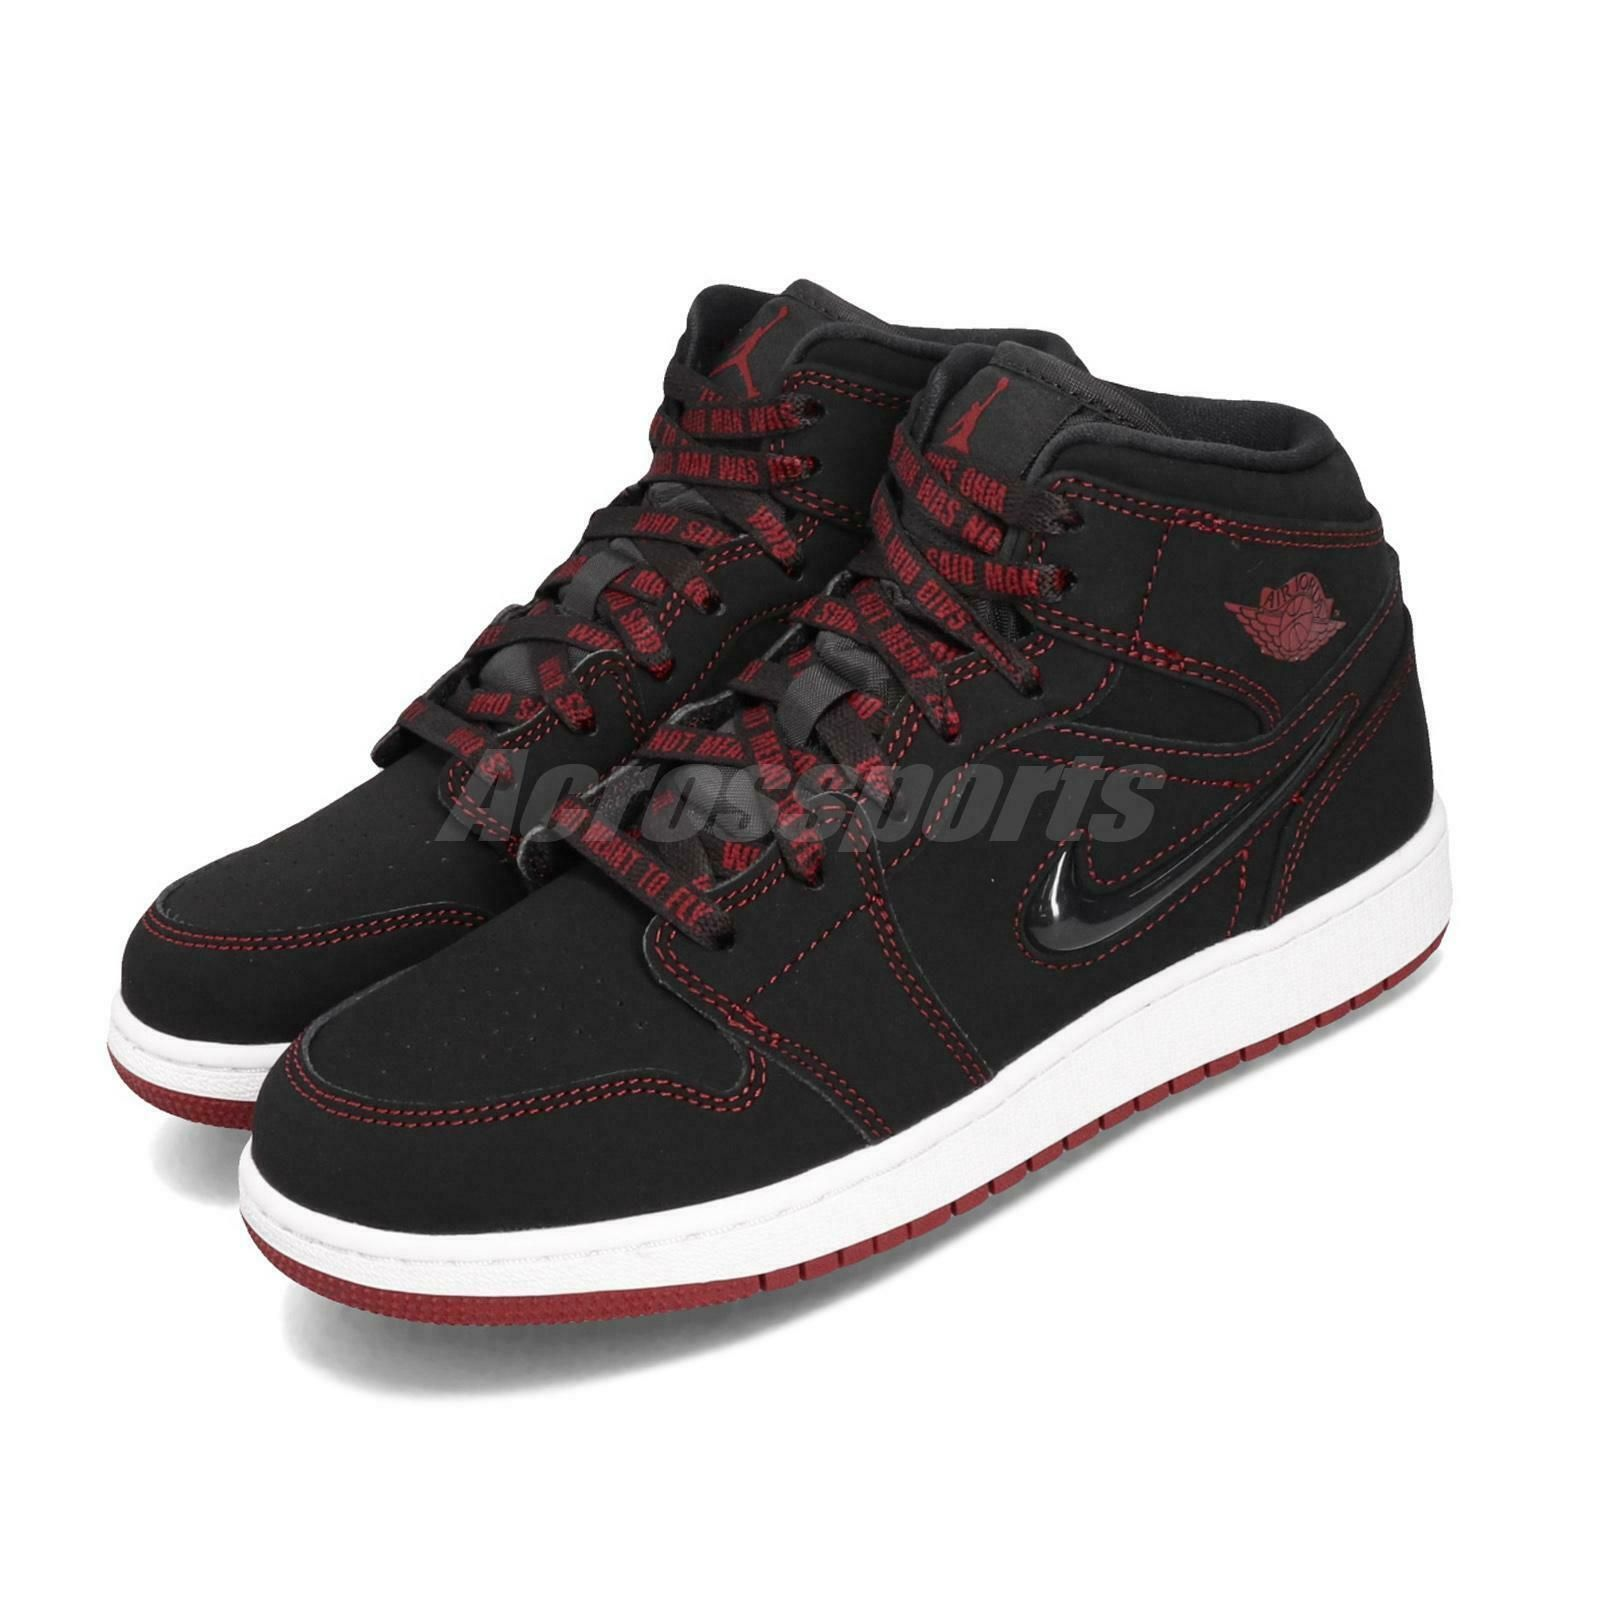 Nike Air Jordan 1 Mid Fearless GS AJ1 Black Red White Kid Women Shoes CU6617-062 $179.99 #jordan #1 #fearless #airjordan1outfitwomen